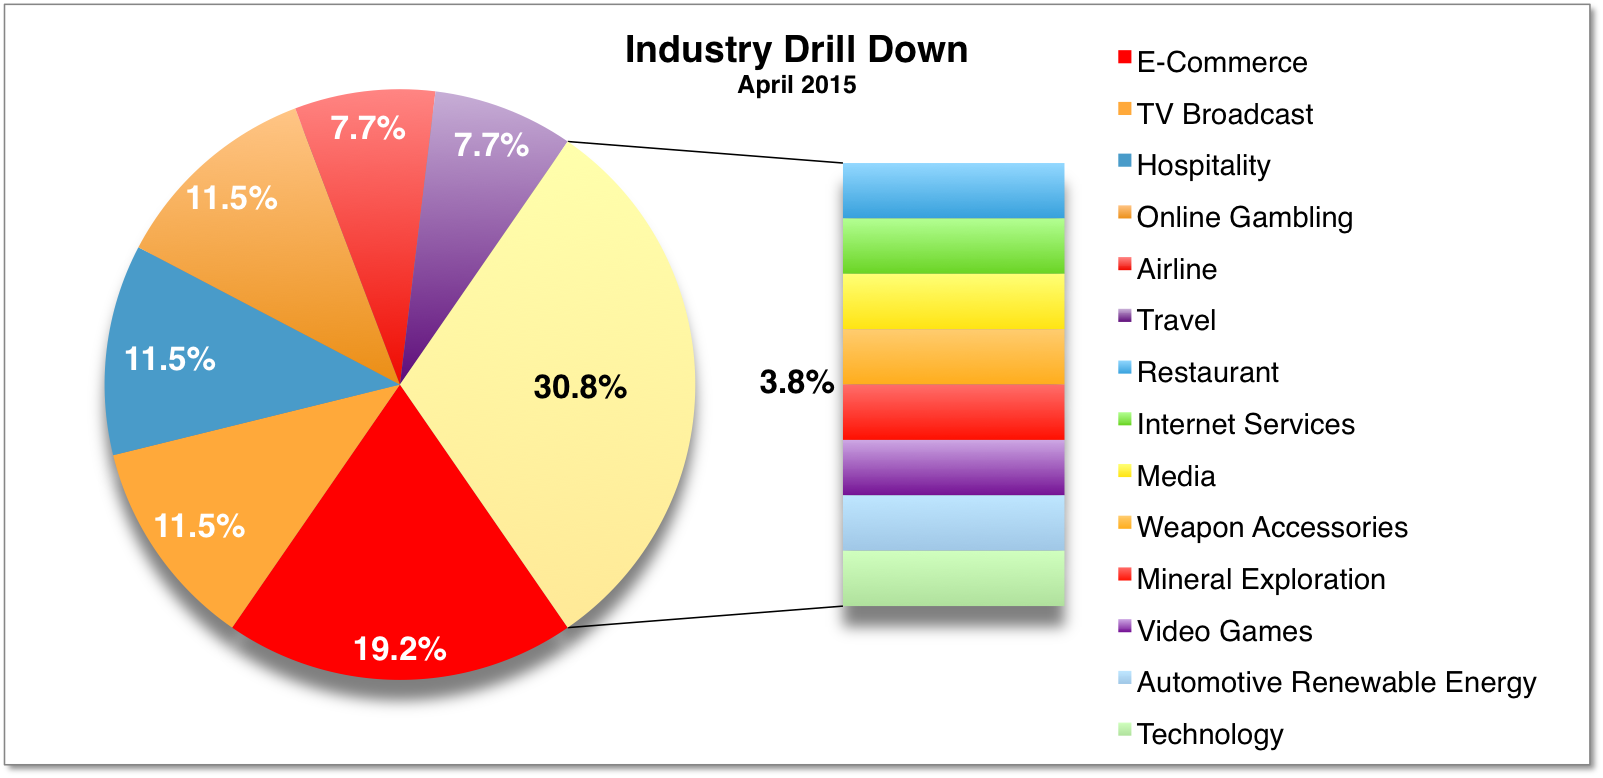 Industry Drill Down April 2015